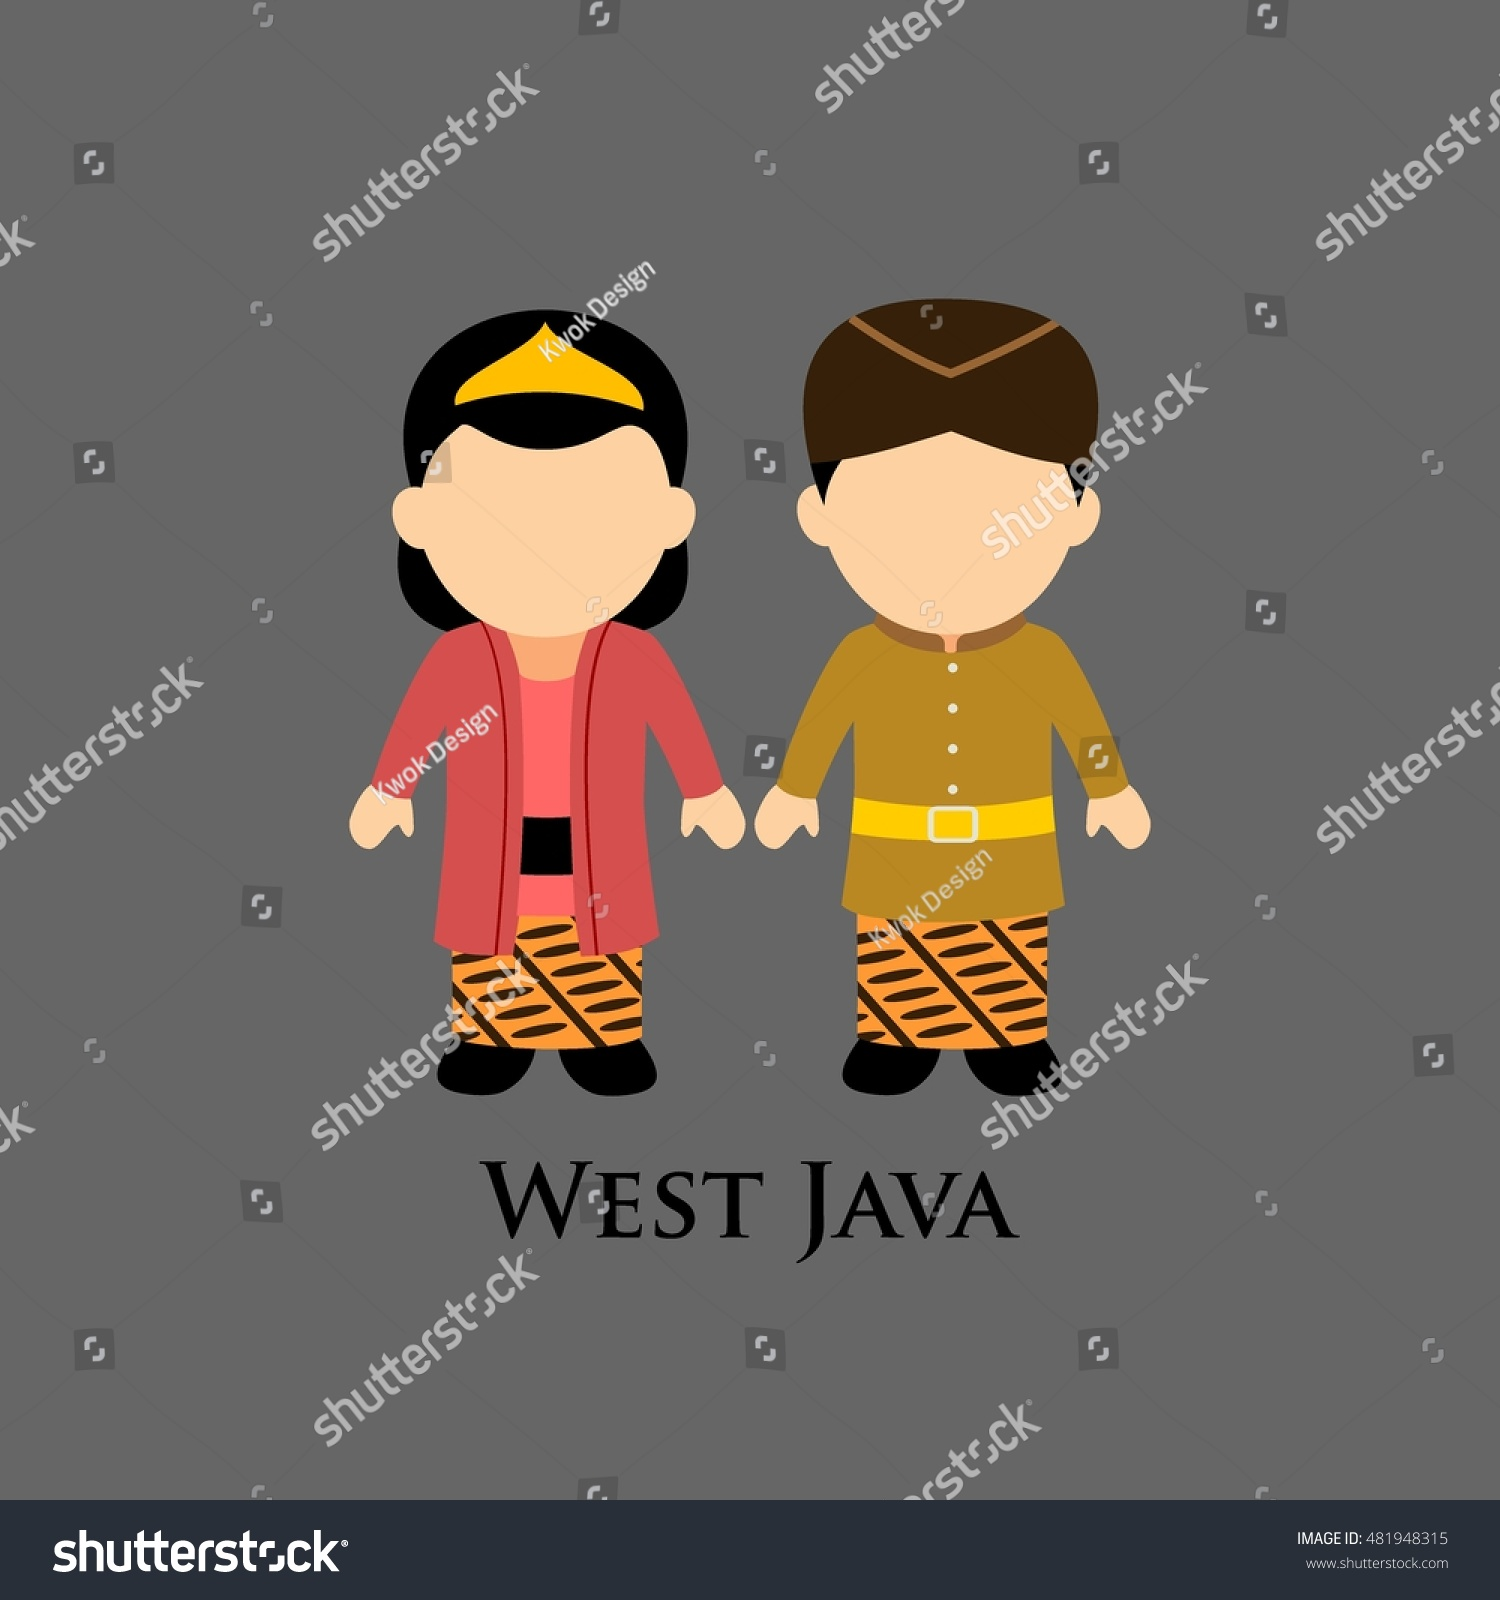 Indonesian boys and girls in west java traditional costume learning diversity and culture around the